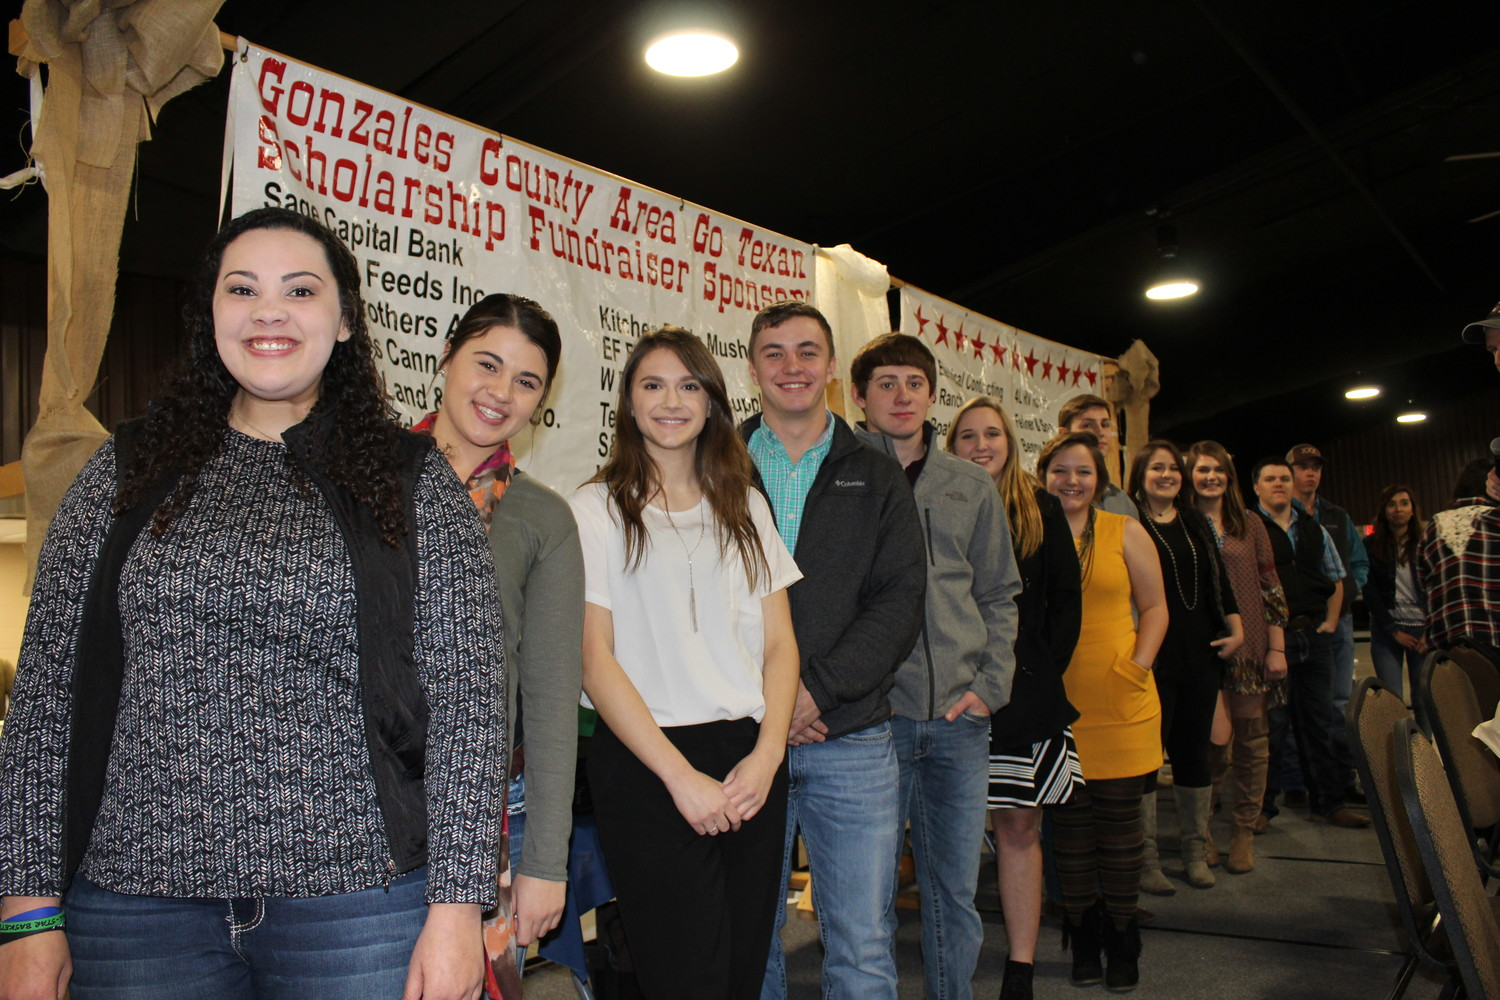 Last year the Gonzales County Area Go Texas Scholarship Fund issued $71,950 in scholarships, to 16 students. These allocations were made through the generosity of donors attending the annual Steak Night Scholarship Fundraiser, held in January; and, through the Gonzales County Area Go Texan Tractor Pull and Cook-off held in September.